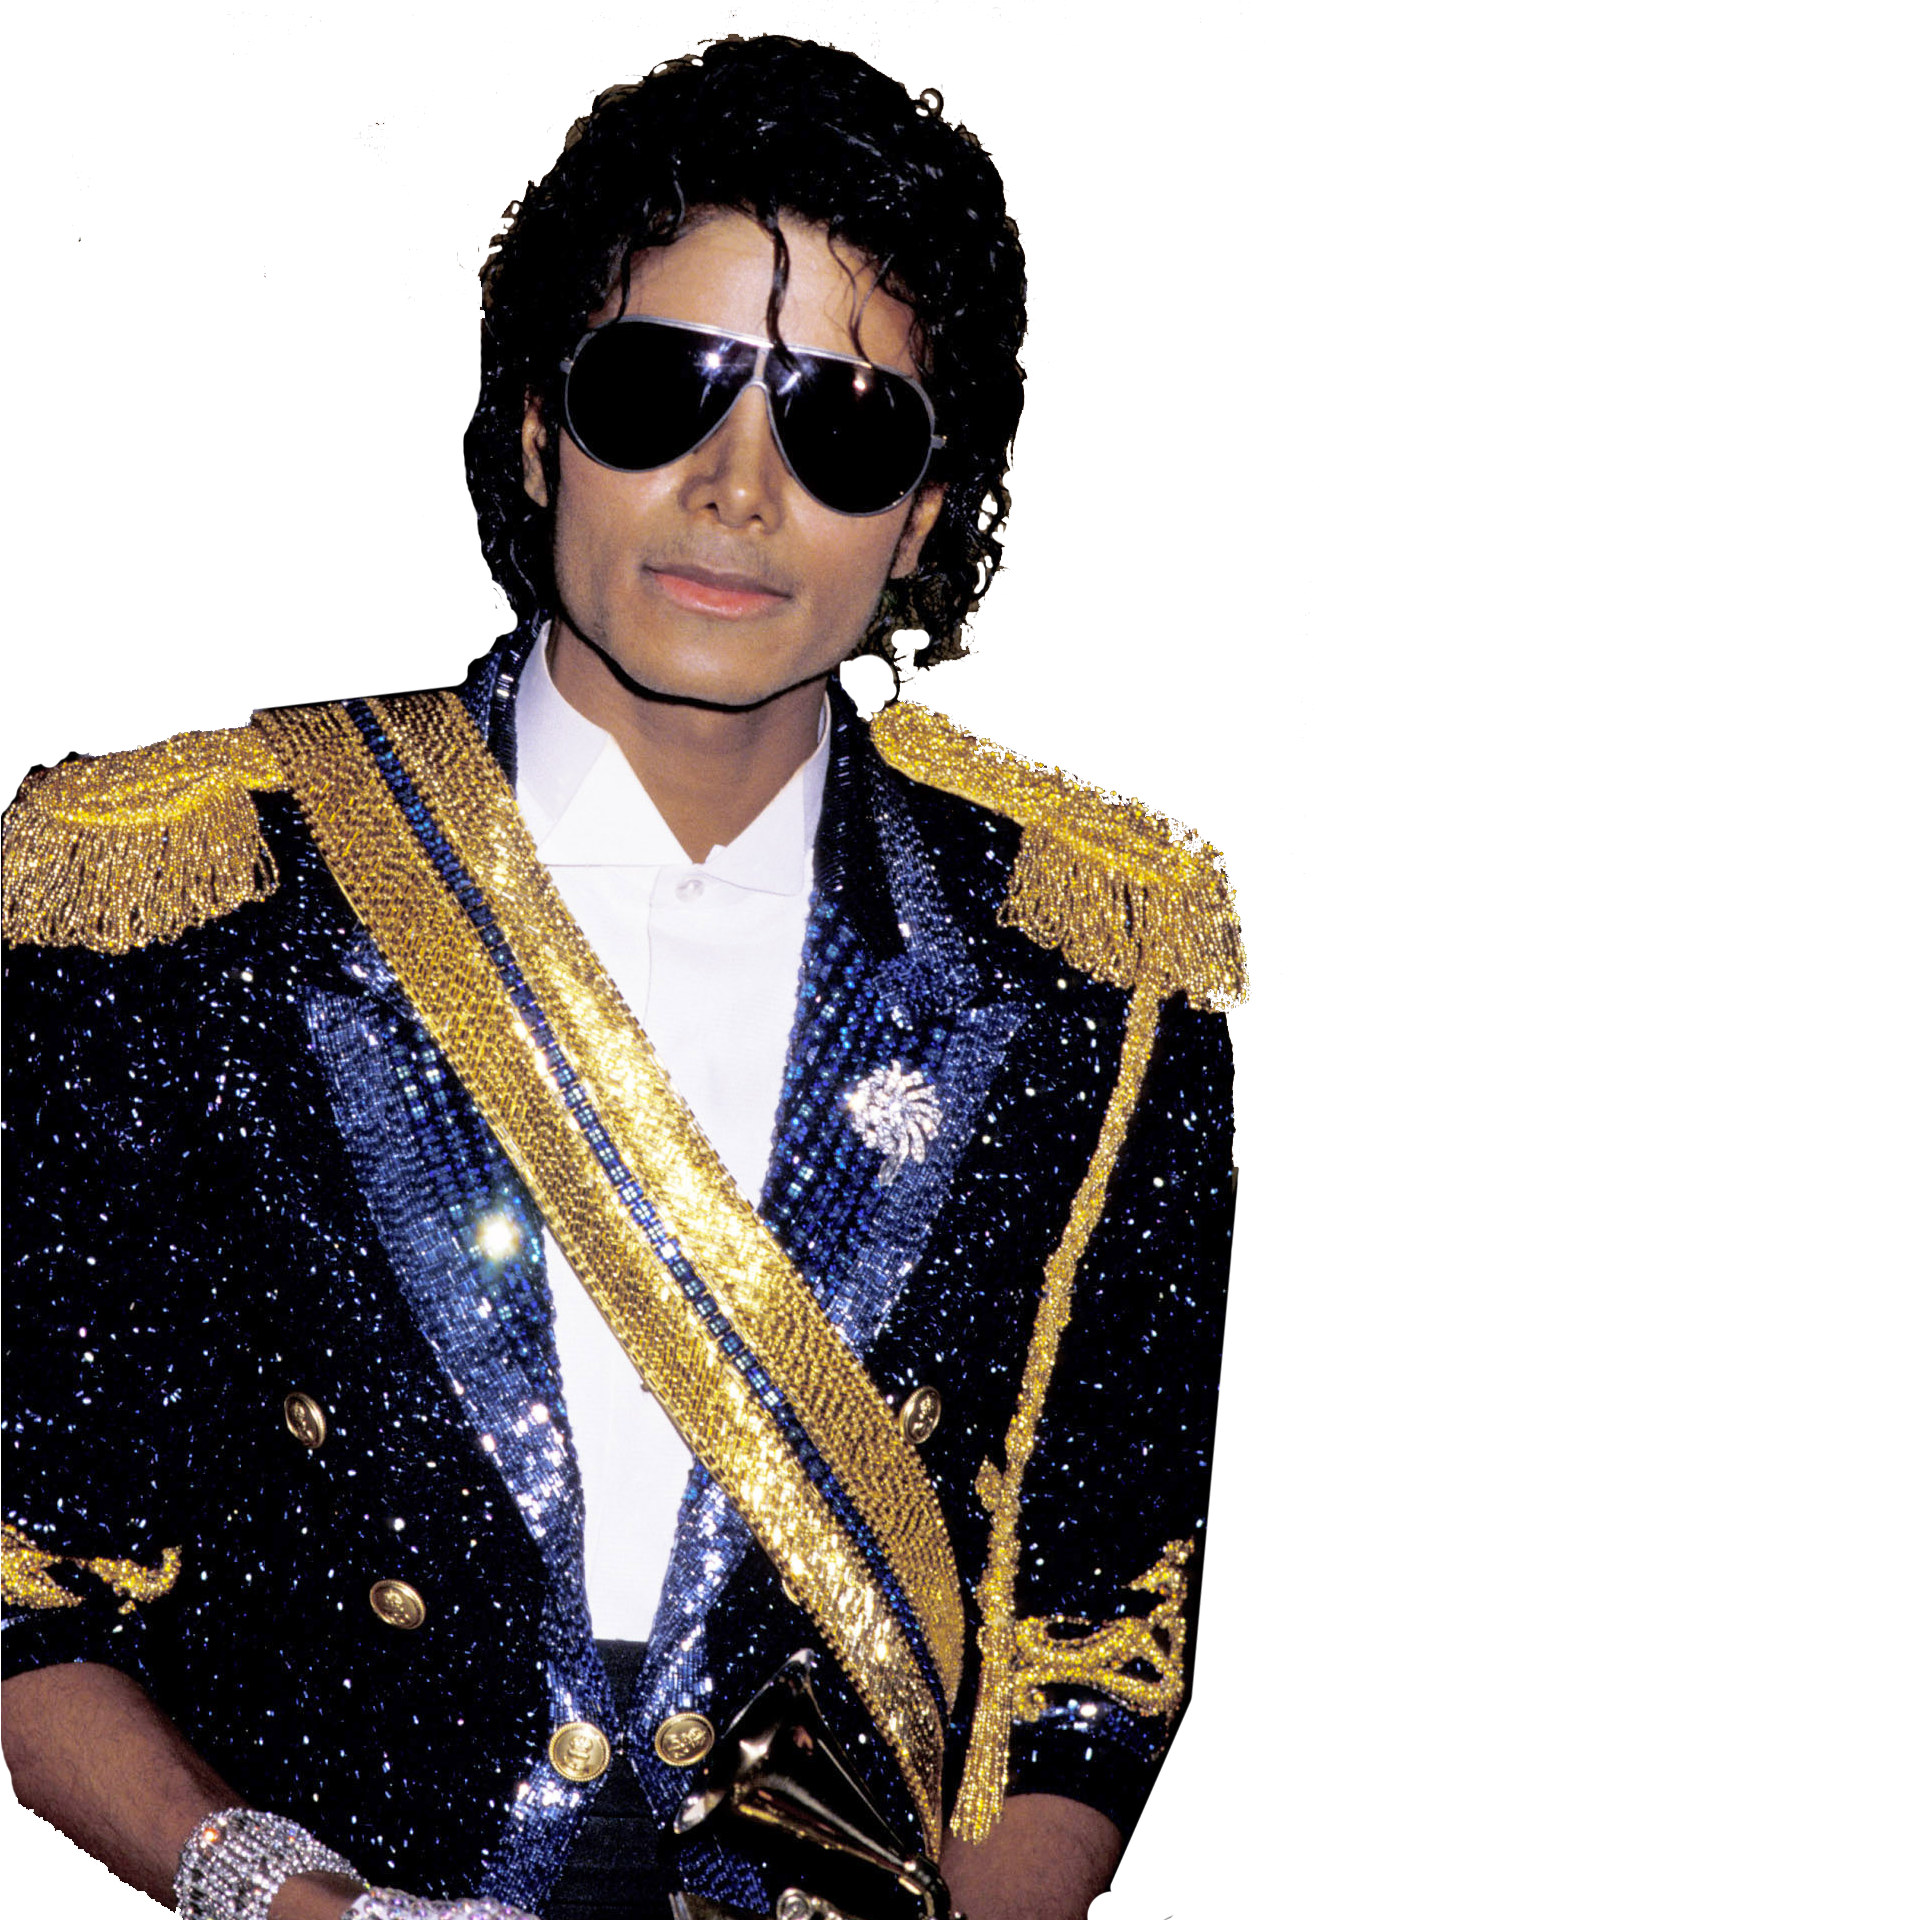 Music video by Michael Jackson performing They Dont Care About Us C 1996 MJJ Productions Inc